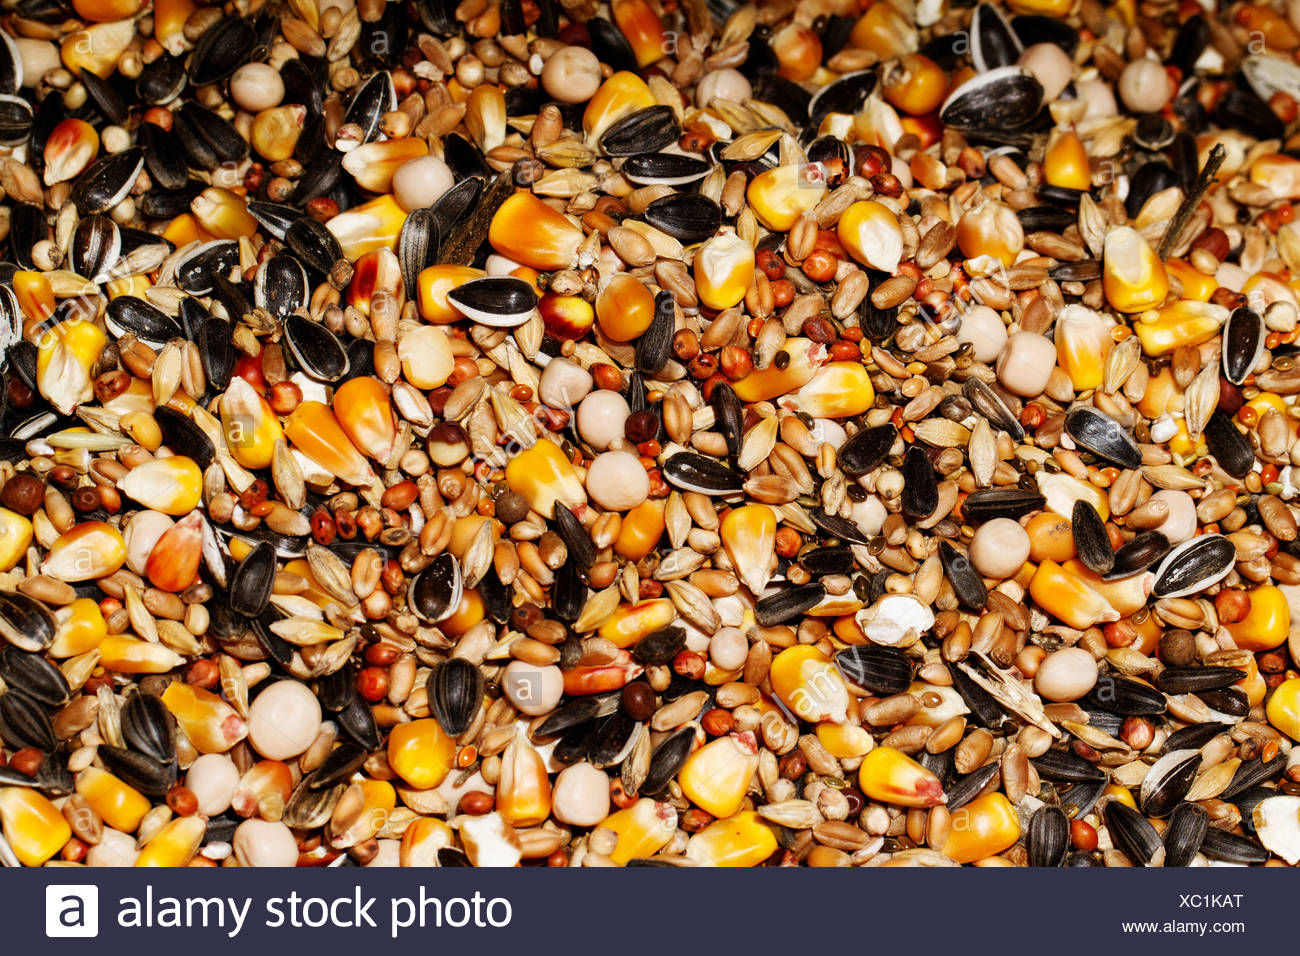 Food for rodents - Stock Image